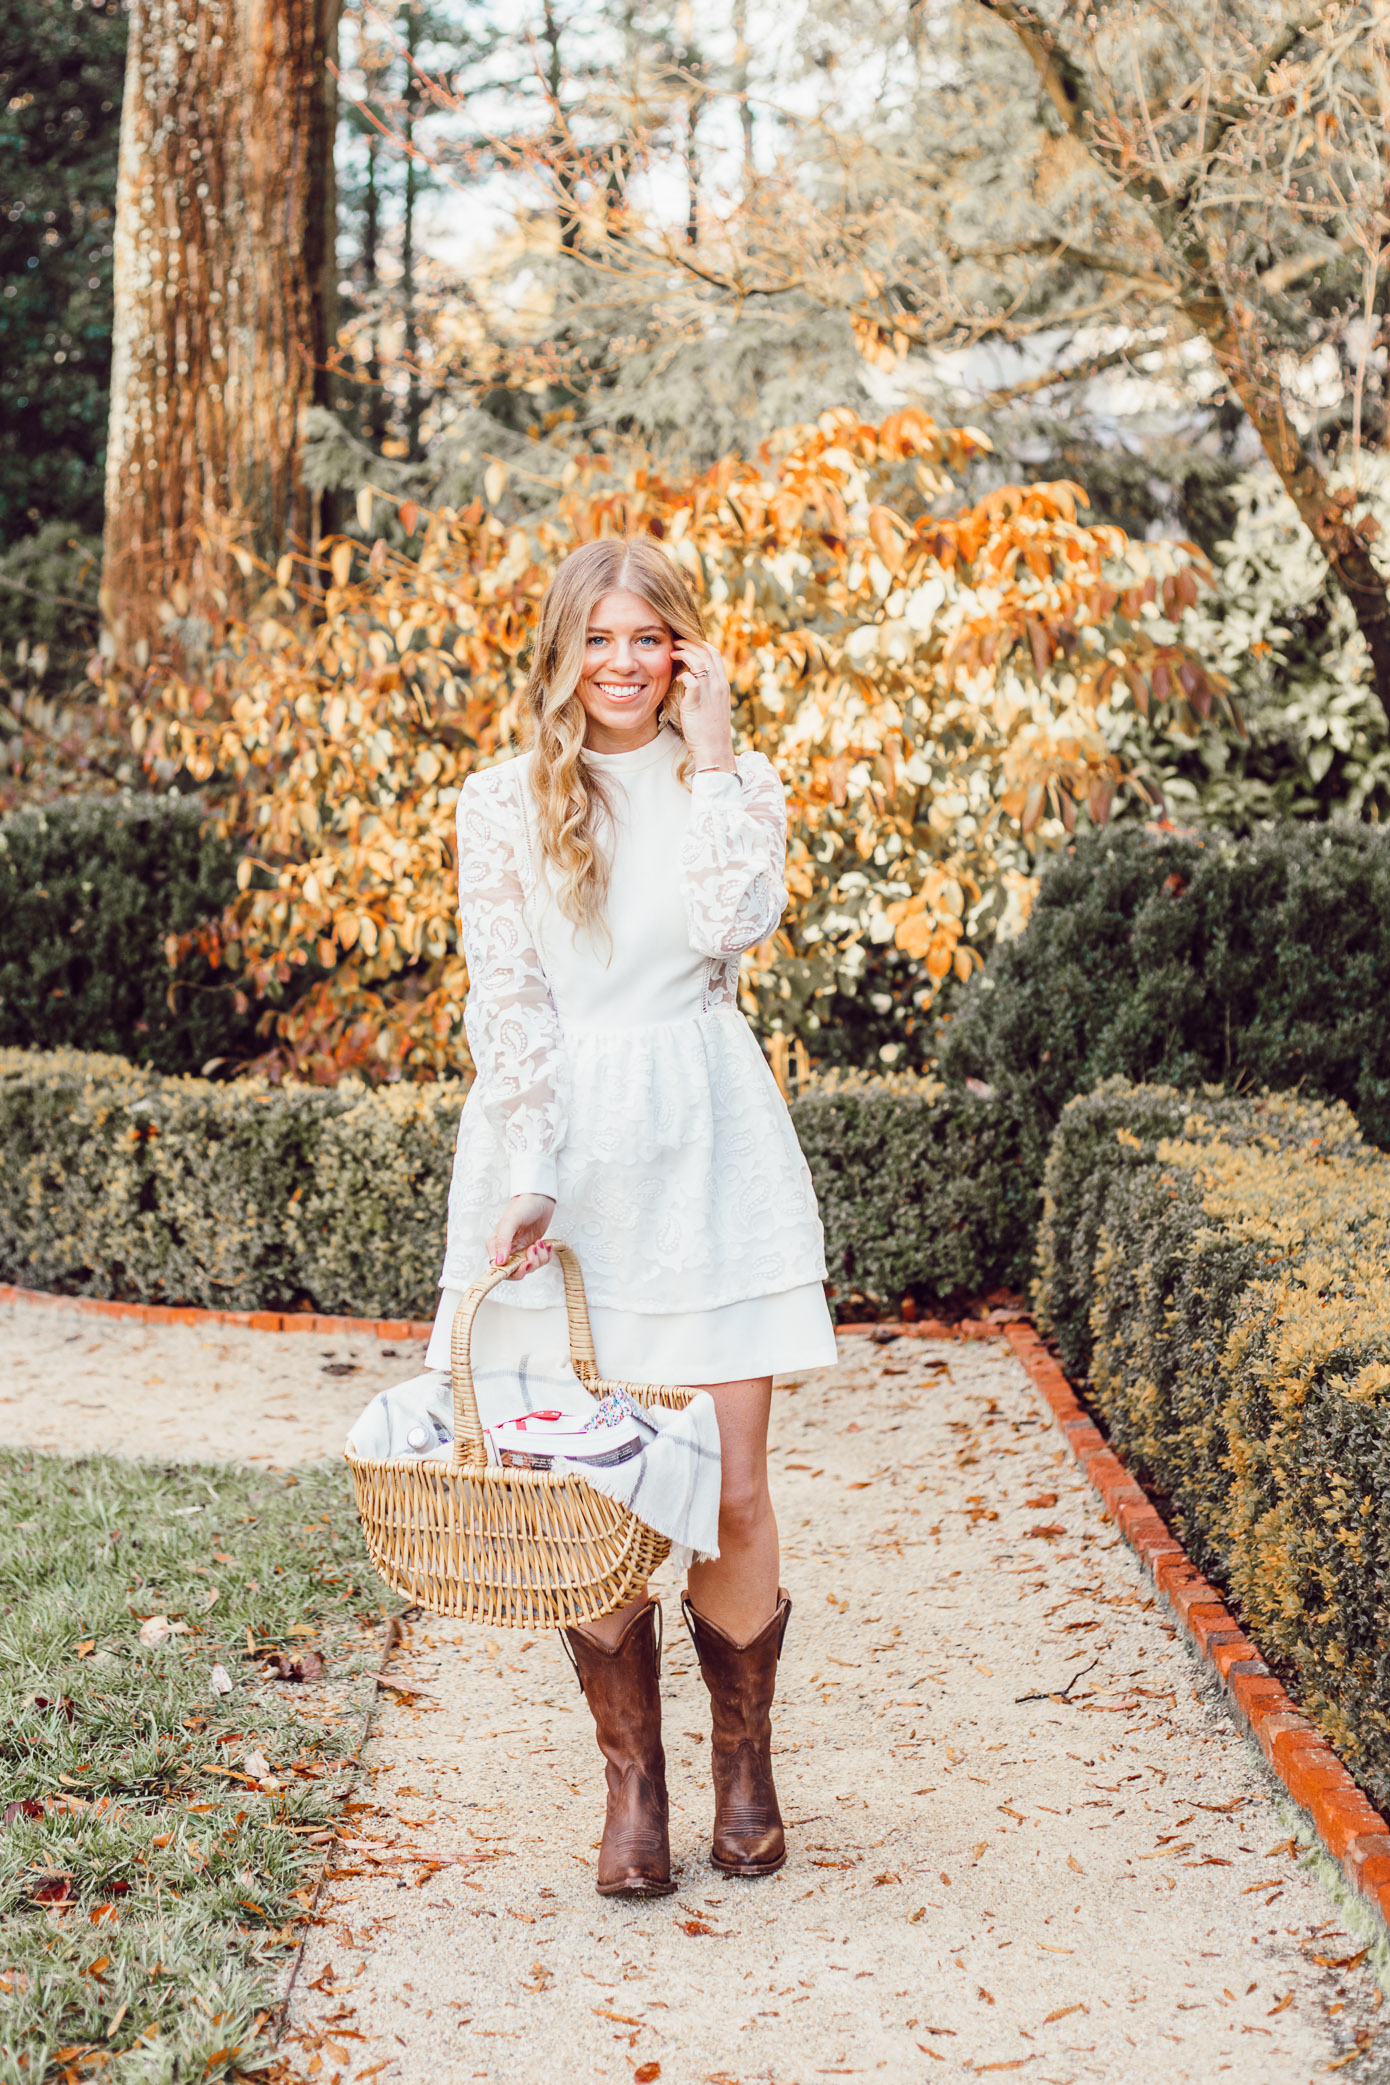 White Mini Dress | How To Celebrate Special Occasions the Right Way With The BEST Small Personal Wine Bottles- Louella Reese